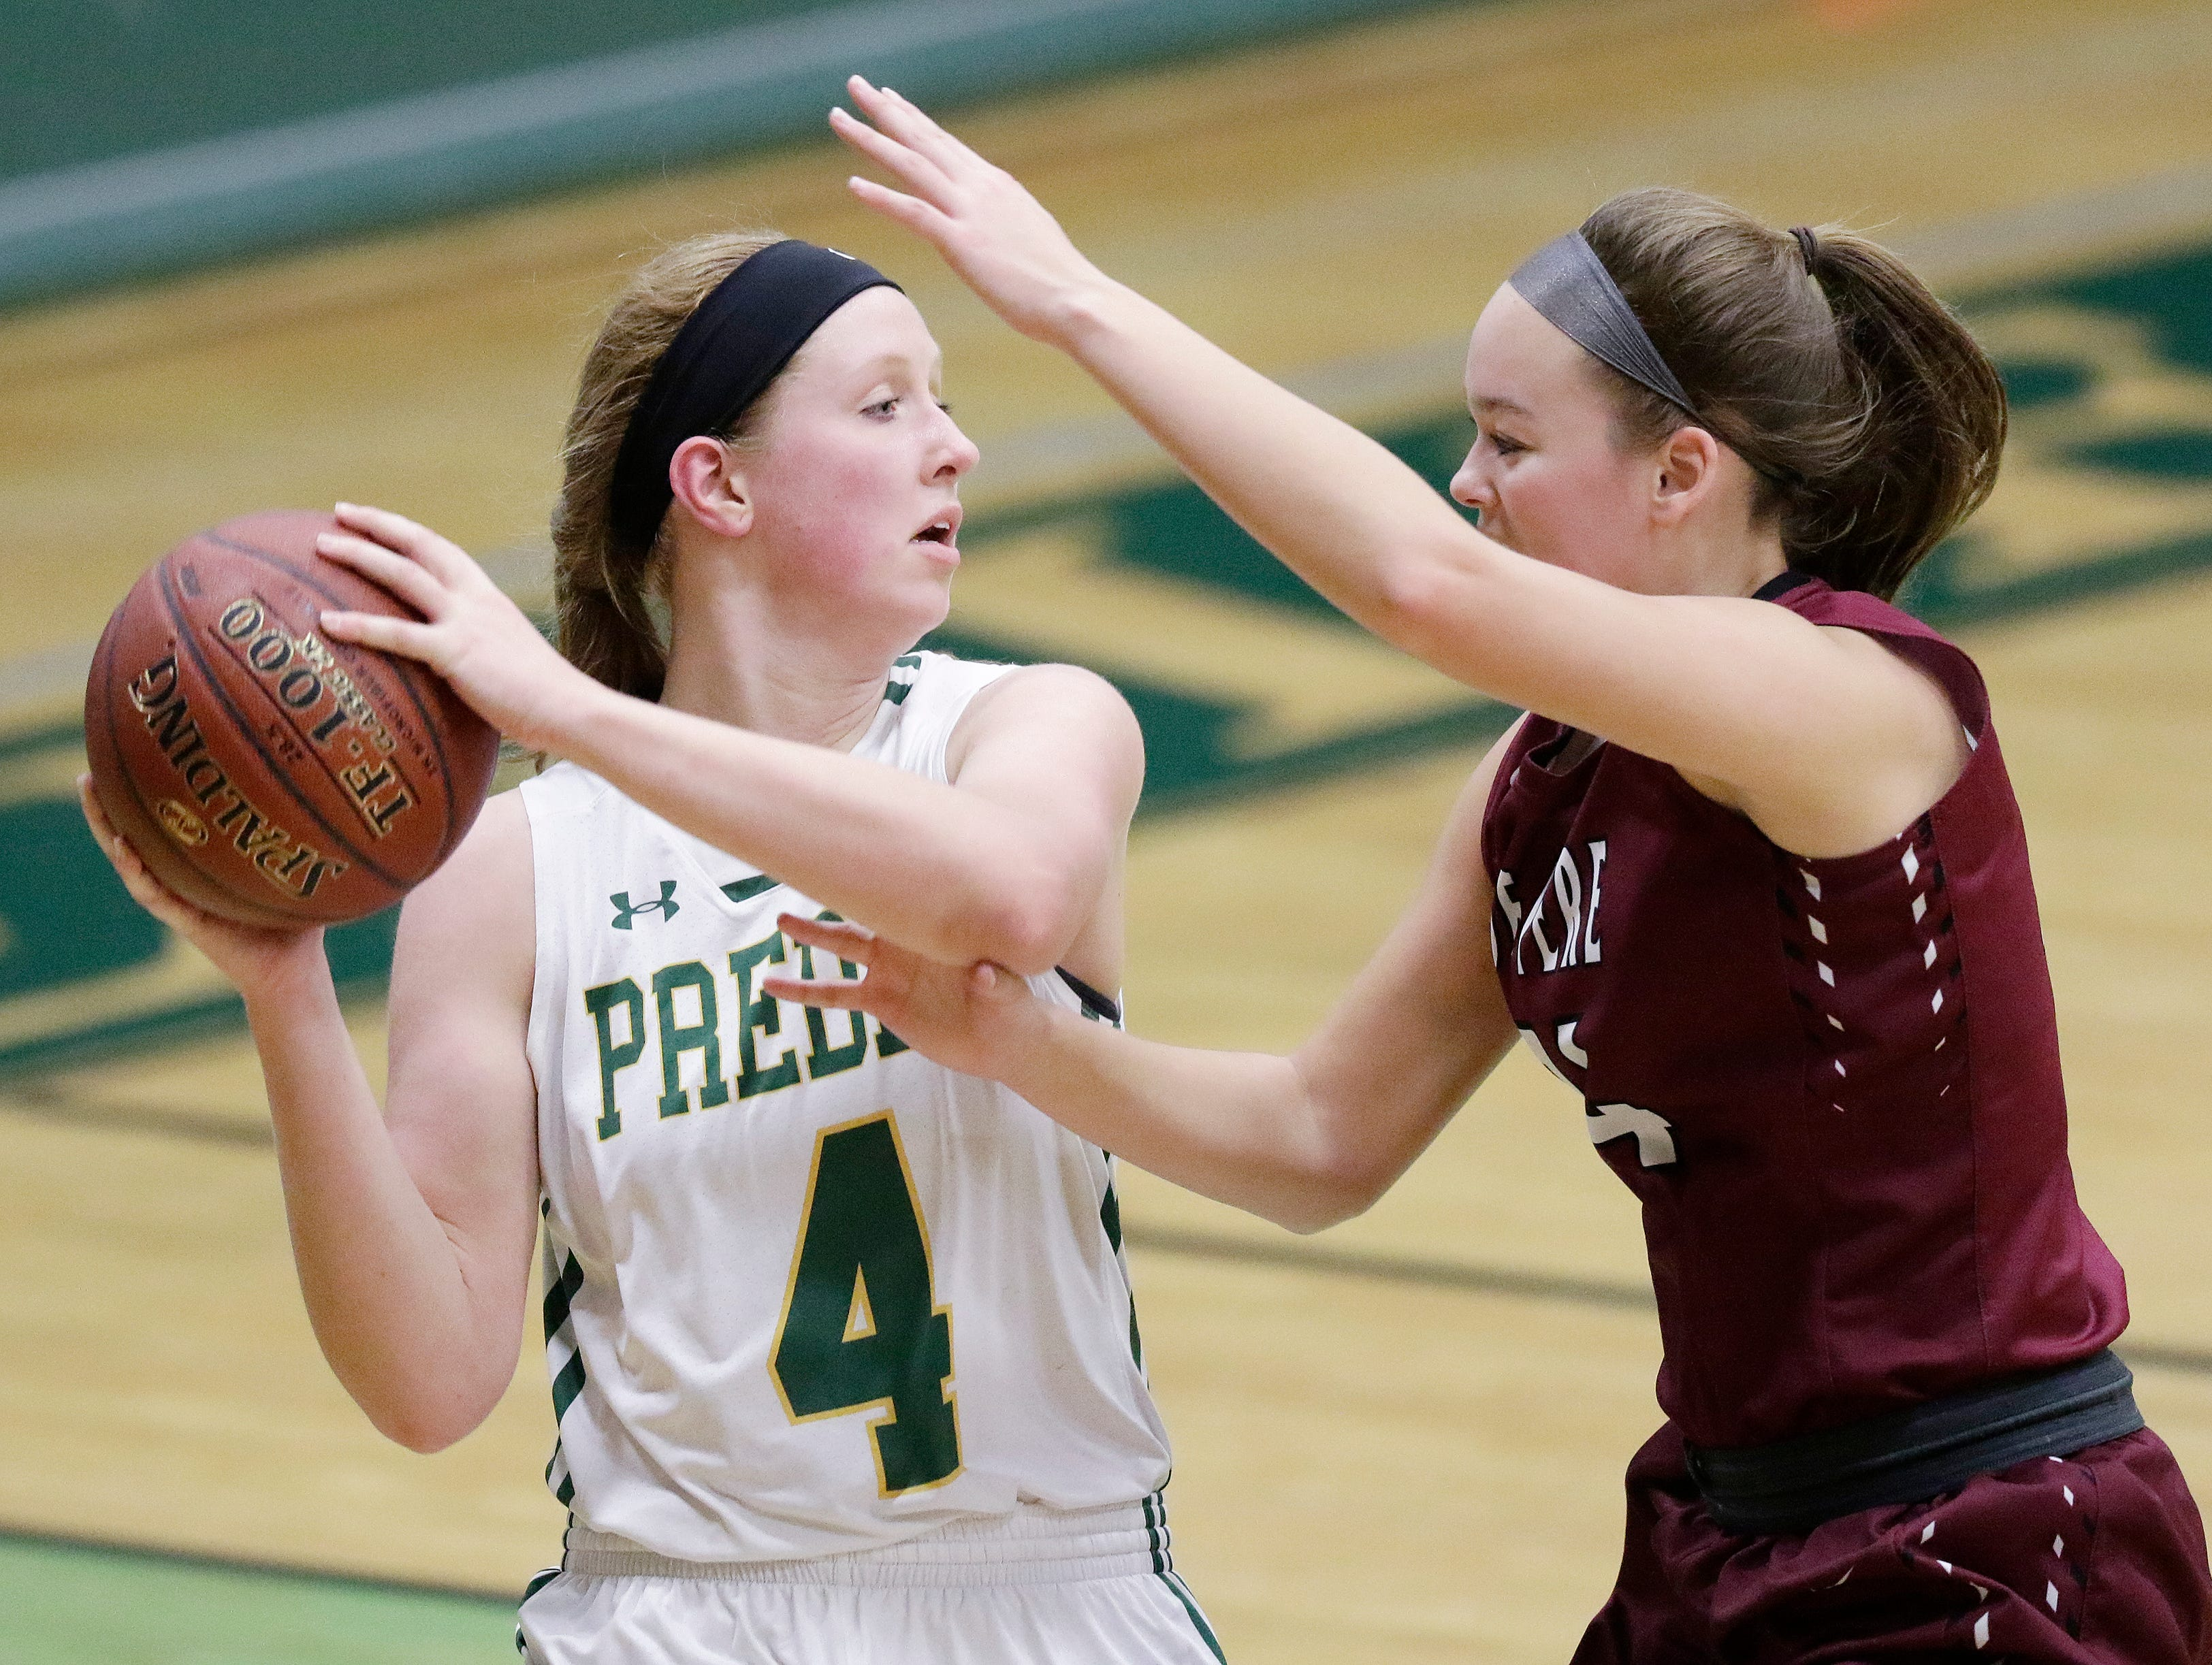 Green Bay Preble's Kendall Renard (4) is pressured by De Pere's Sophia McCarty (24) in a girls basketball game at Preble high school on Tuesday, January 8, 2019 in Green Bay, Wis.